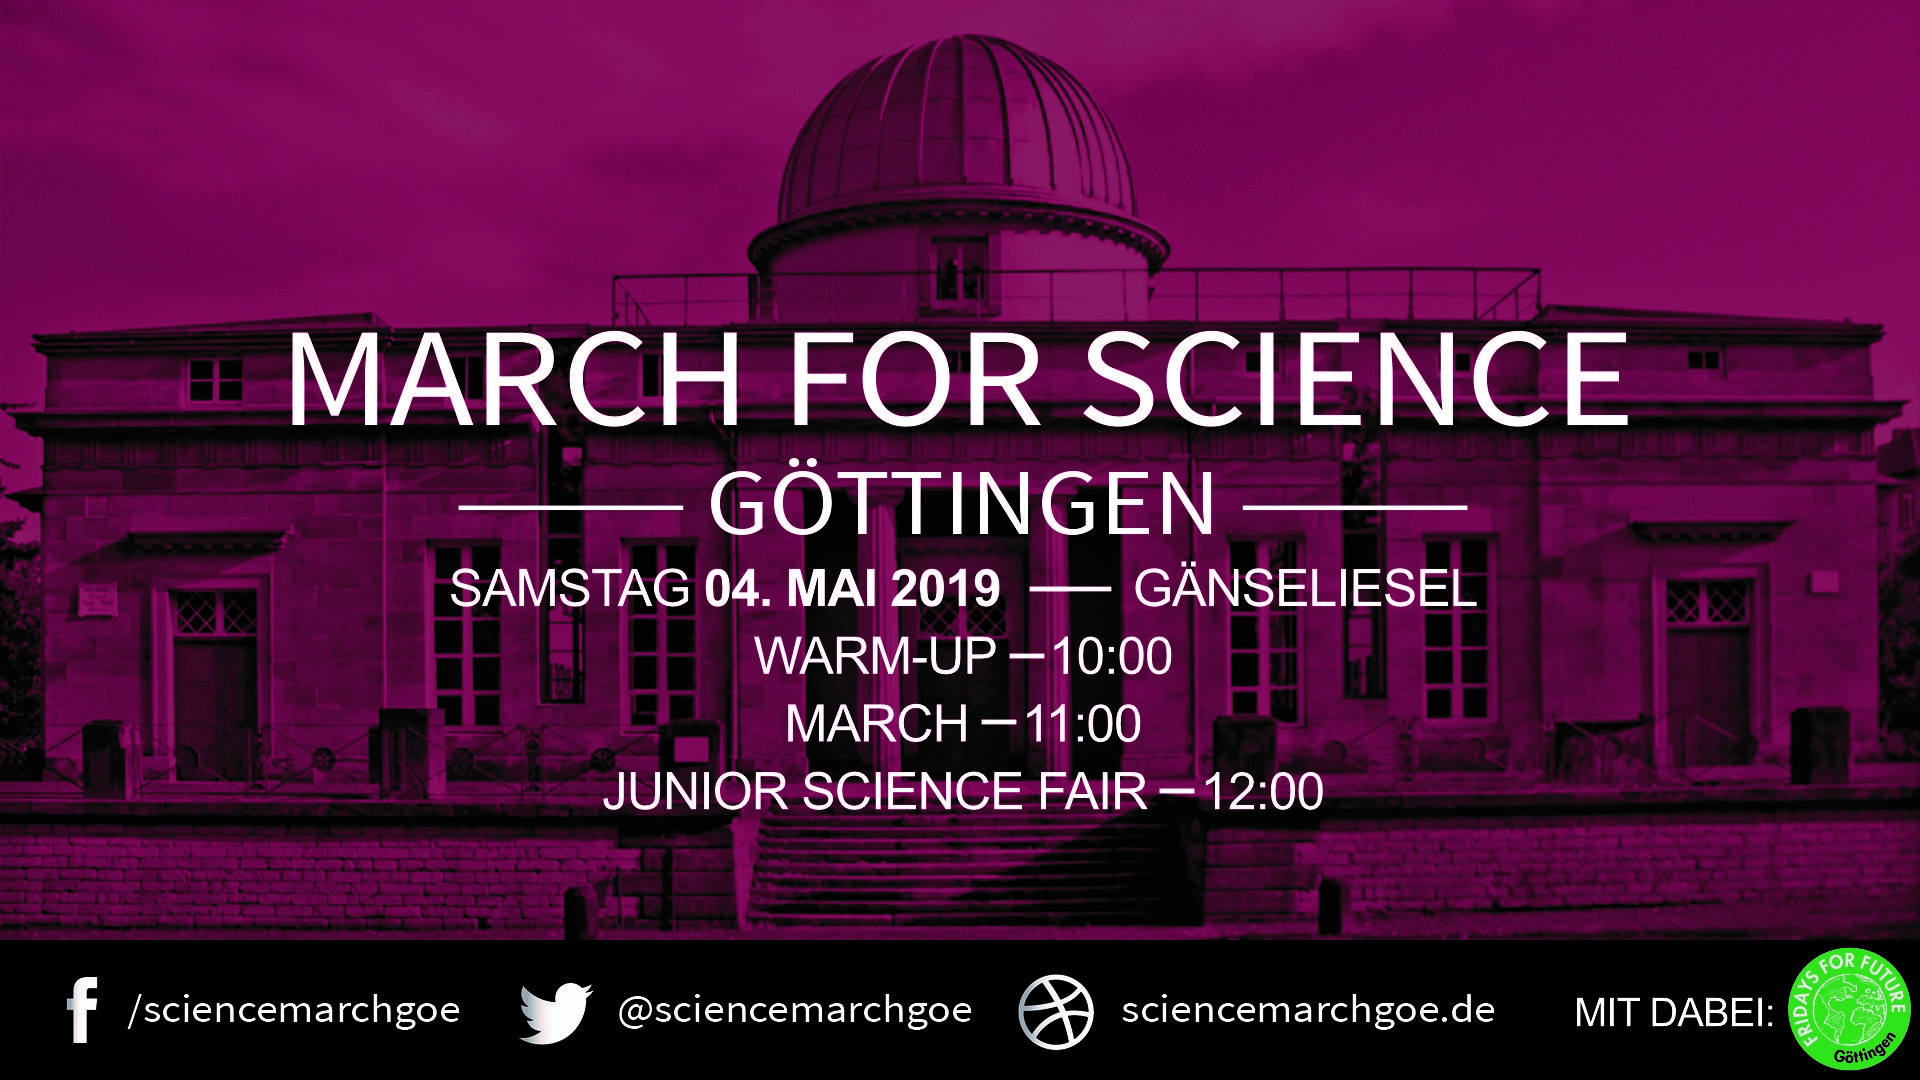 March For Science Göttingen